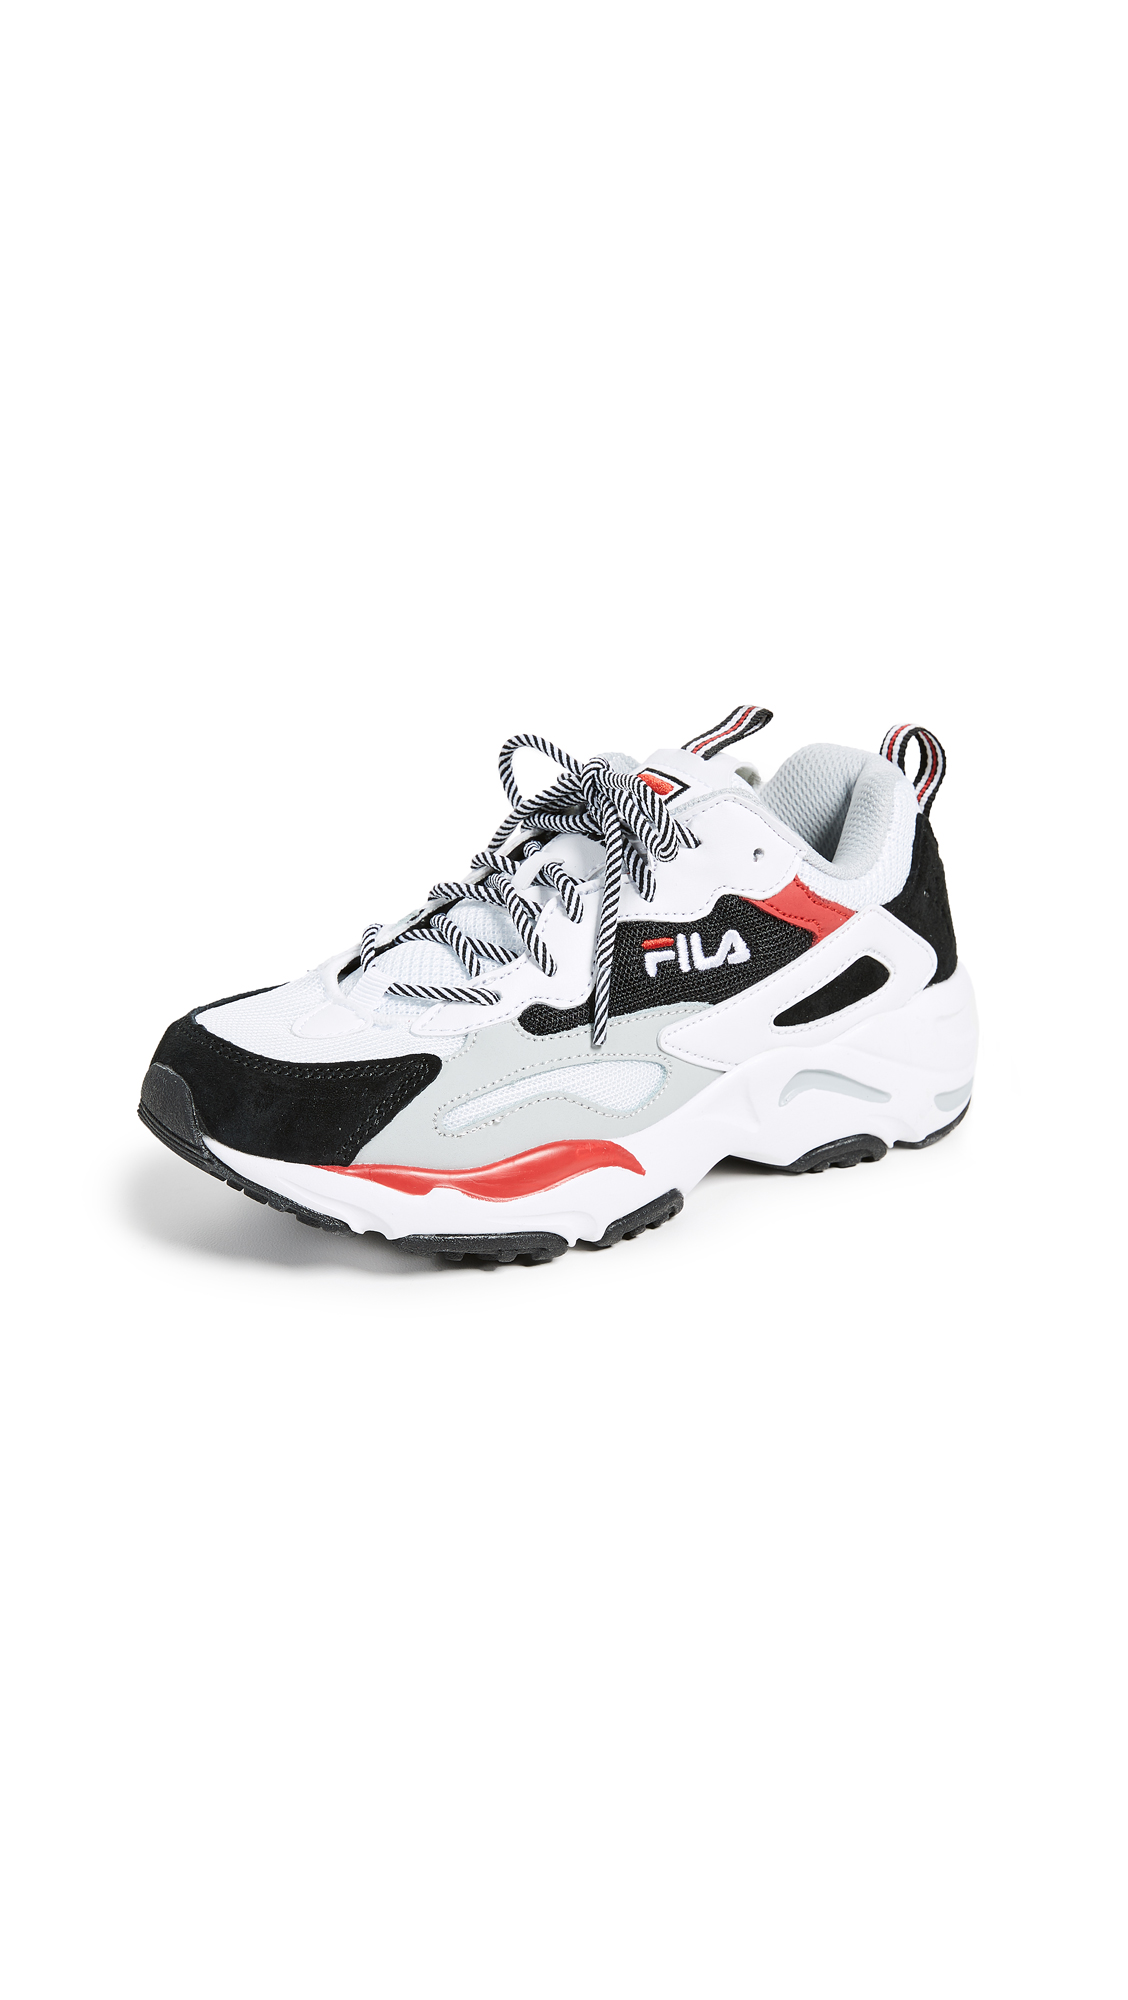 Fila Ray Tracer Sneakers - Wht/Blk/Hris